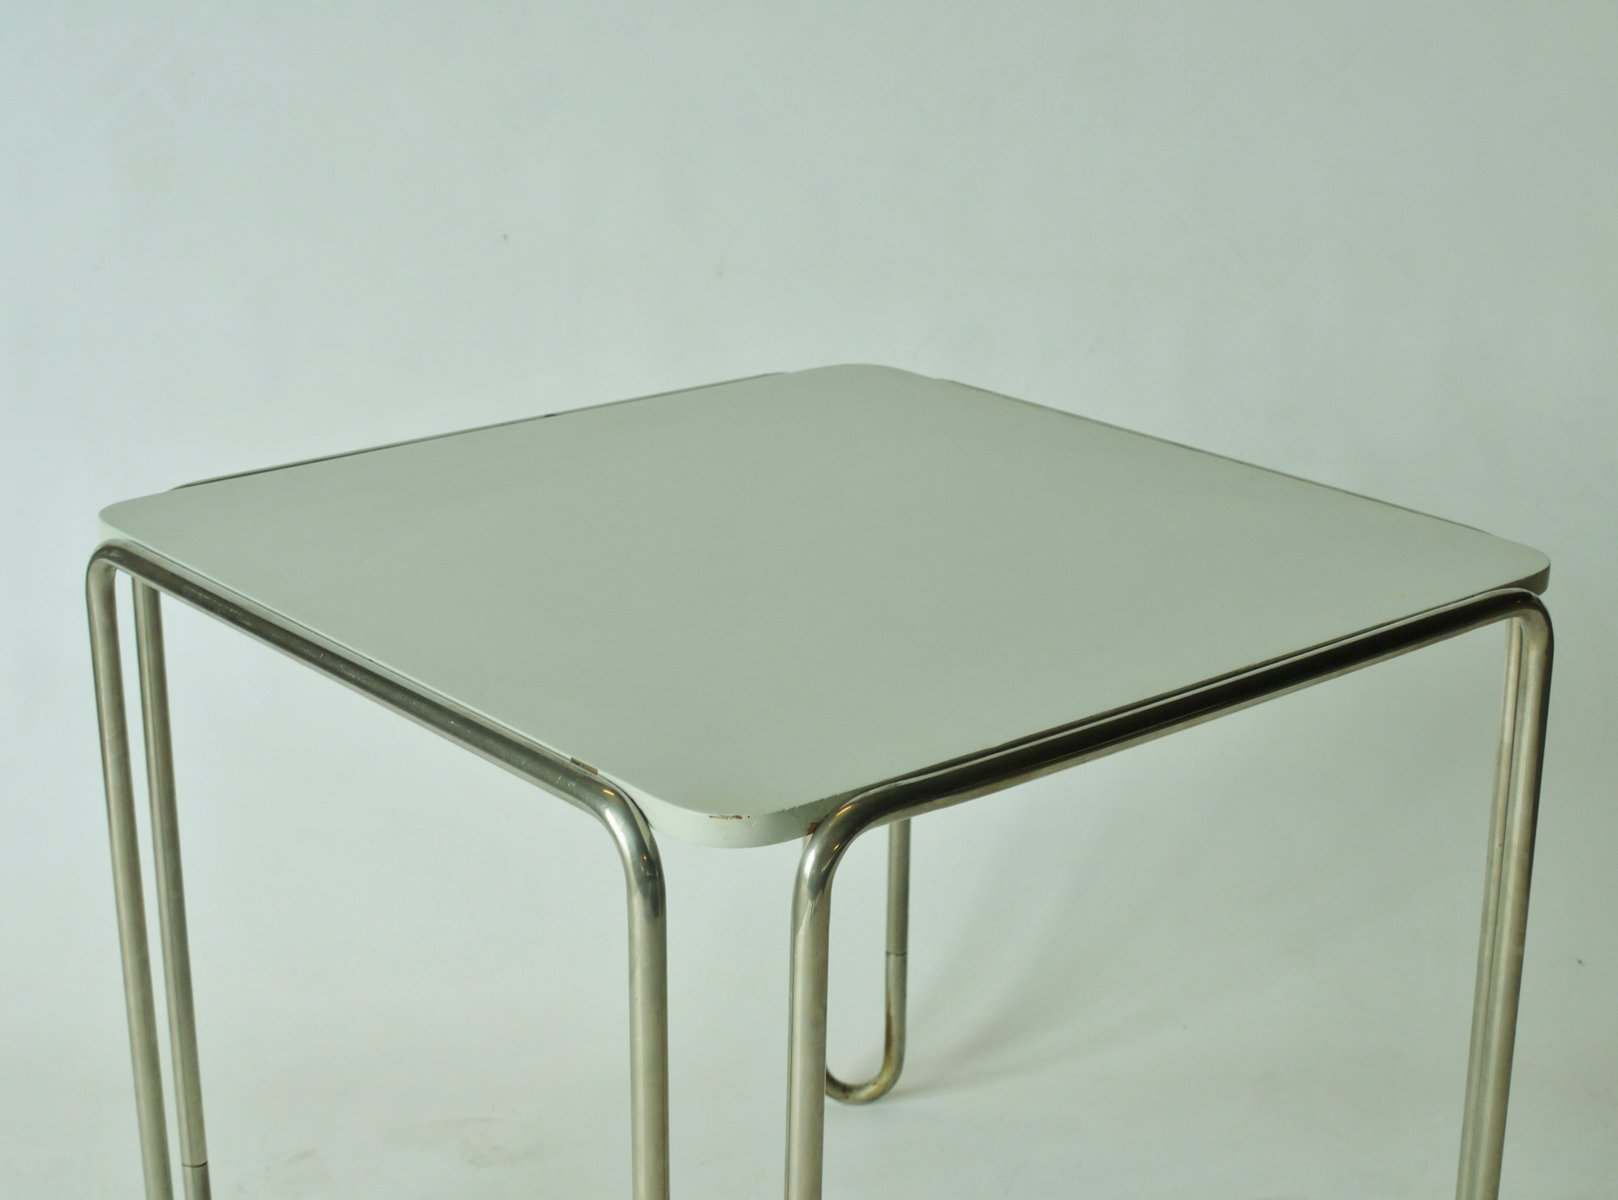 b10 table by marcel breuer for thonet for sale at pamono - Marcel Breuer Tisch